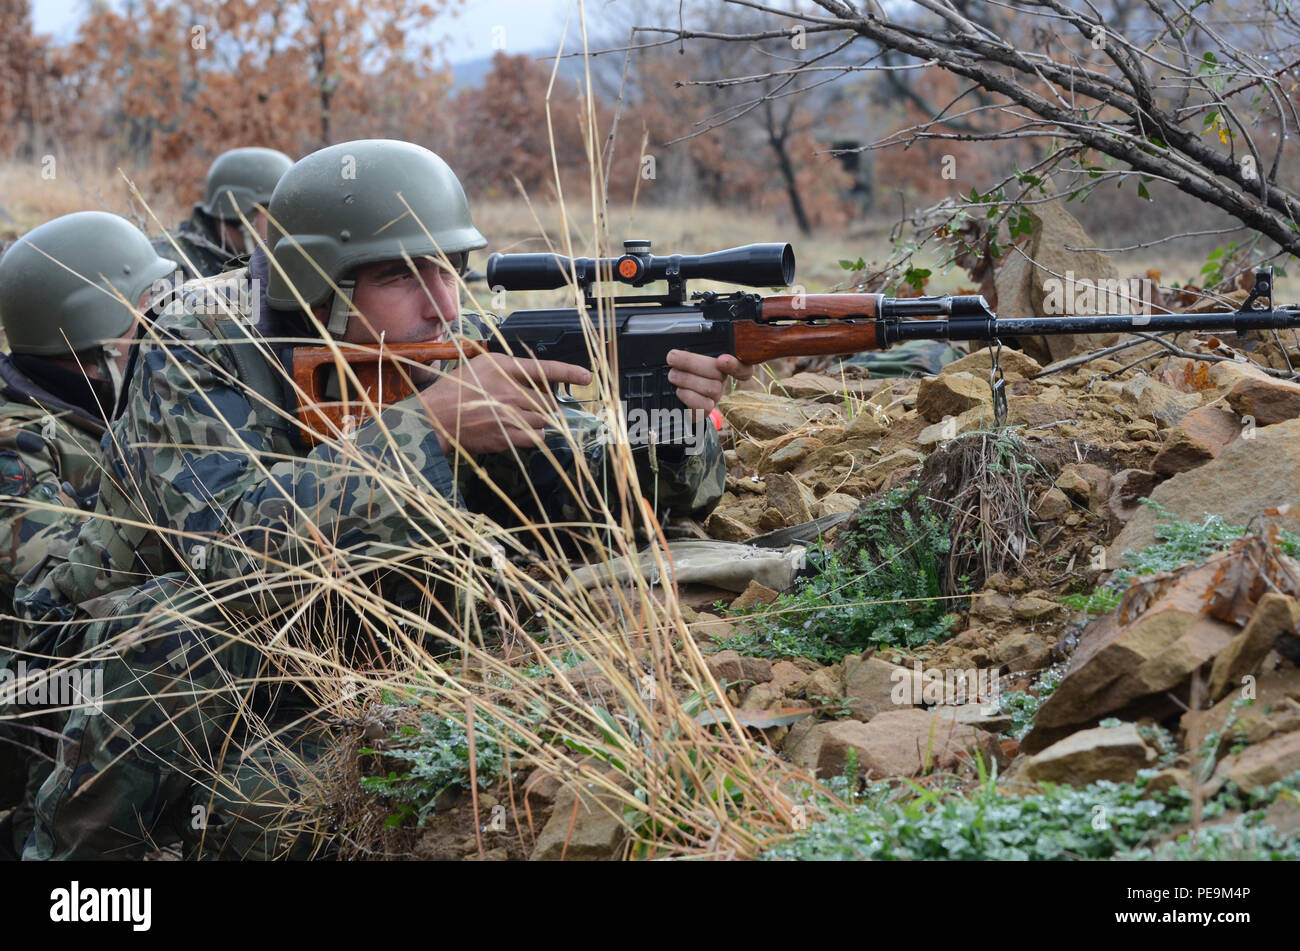 A Bulgarian soldier of 1-61st Mechanized Battalion looks through the scope mounted on a Dragunov Sniper rifle toward the enemy during Exercise Peace Sentinel at Novo Selo Training Center, Bulgaria, Nov. 24, 2015. (U.S. Army photo by Staff Sgt. Steven M. Colvin/Released) - Stock Image